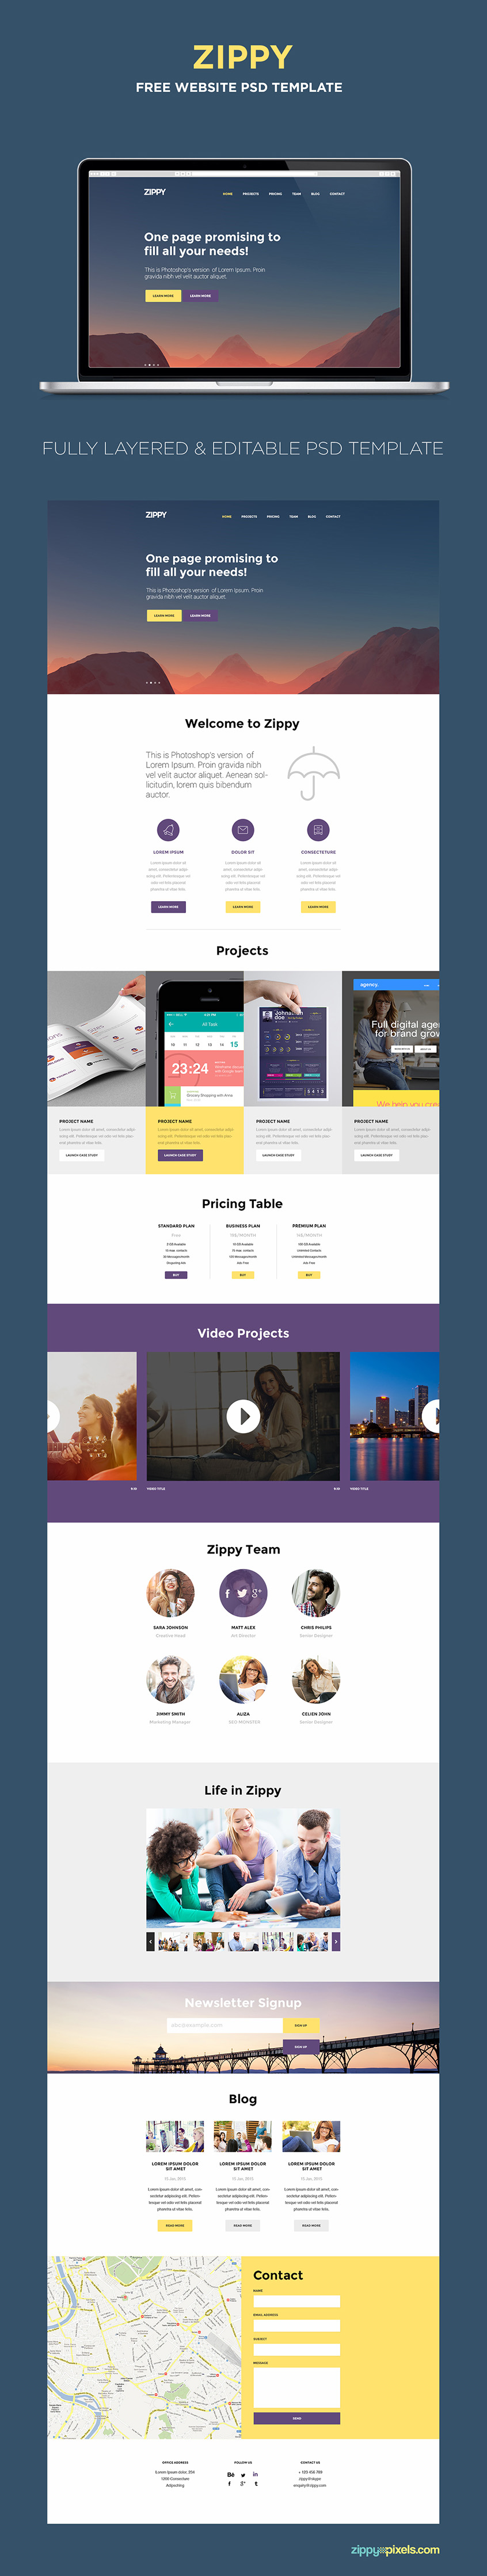 create or present amazing one page website designs with this free psd template